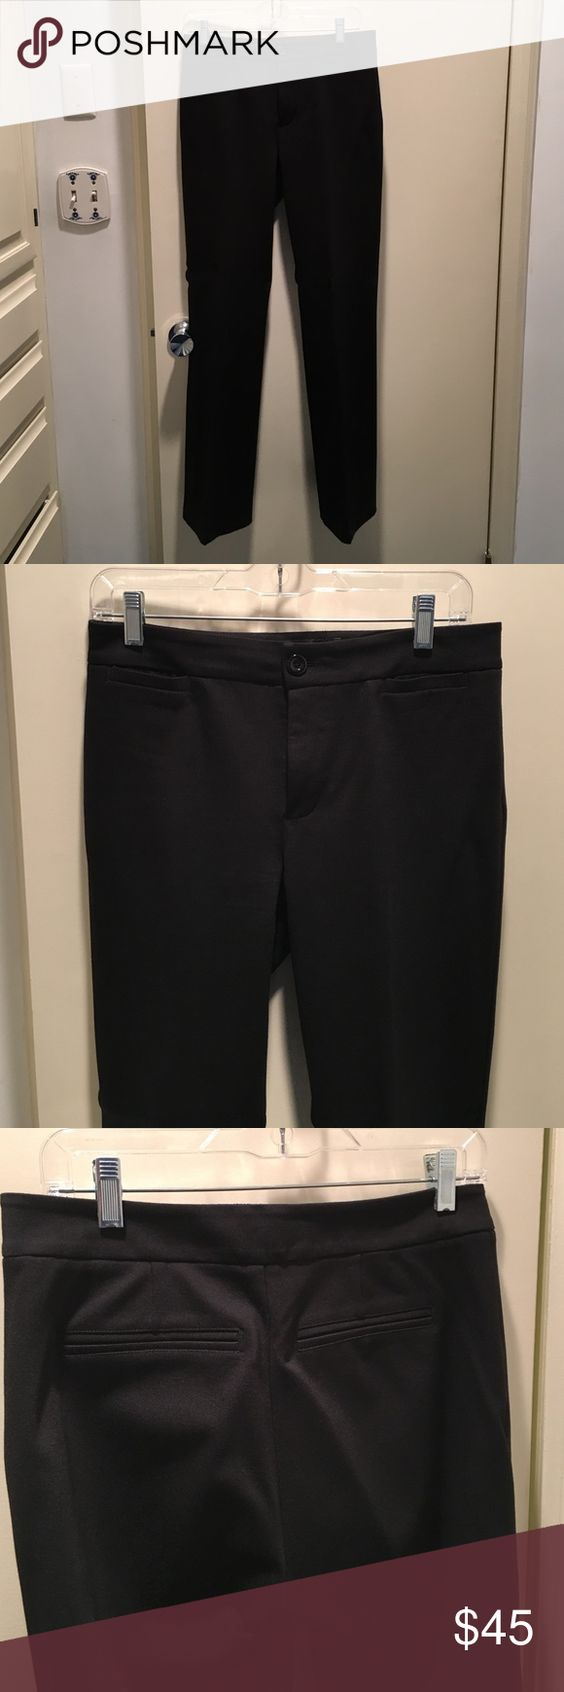 Flat front NYDJ pants Like new black dress stretch pants. Mini slit pockets on front, Slit pockets in back. Not Your Daughter's Jeans size 4 Pants Trousers